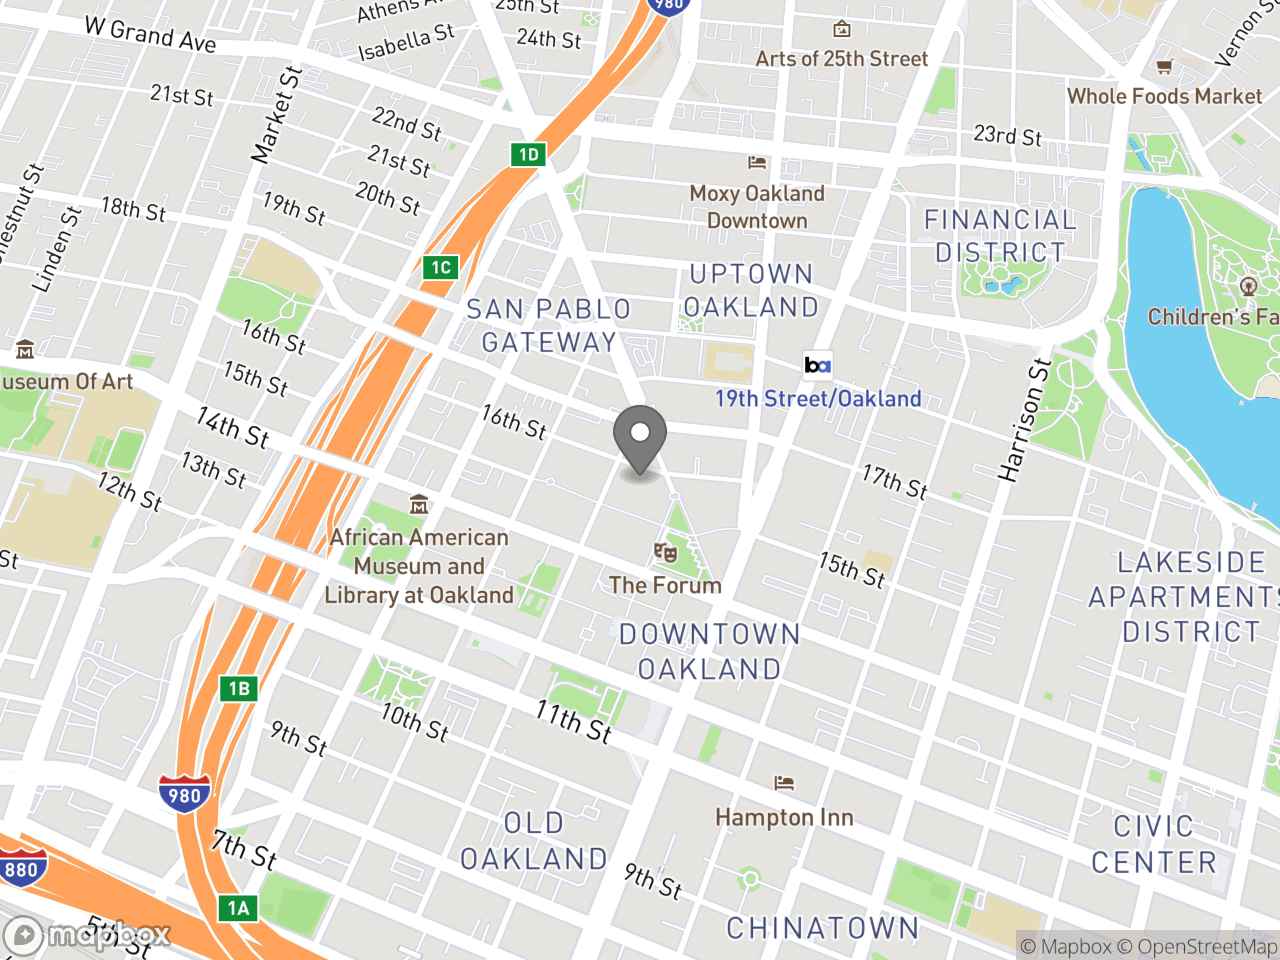 Map location for Housing & Community Development, located at 250 Frank H Ogawa Plaza in Oakland, CA 94612